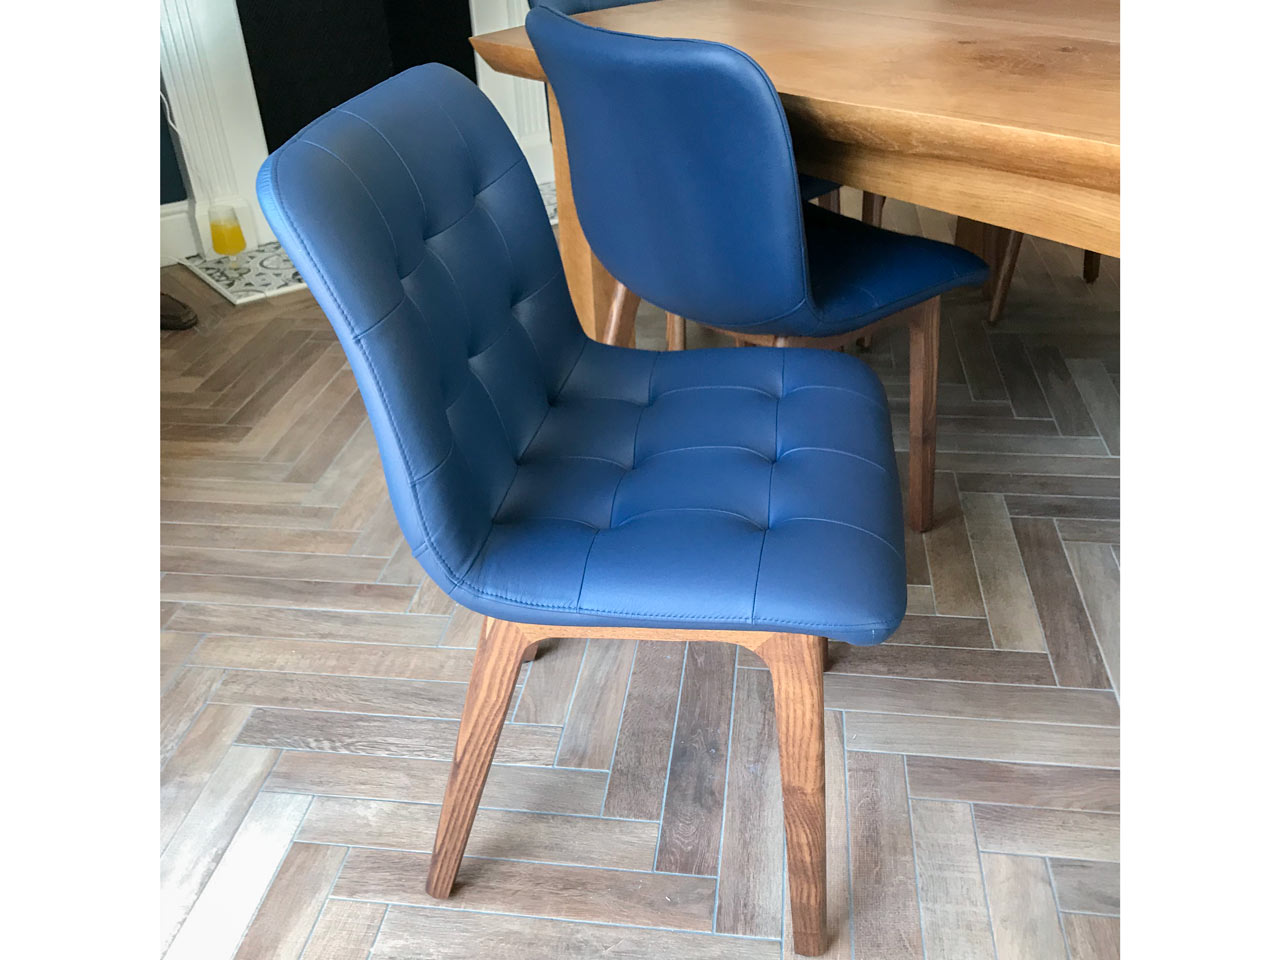 Farmhouse-dining-chair-project-672-pic2